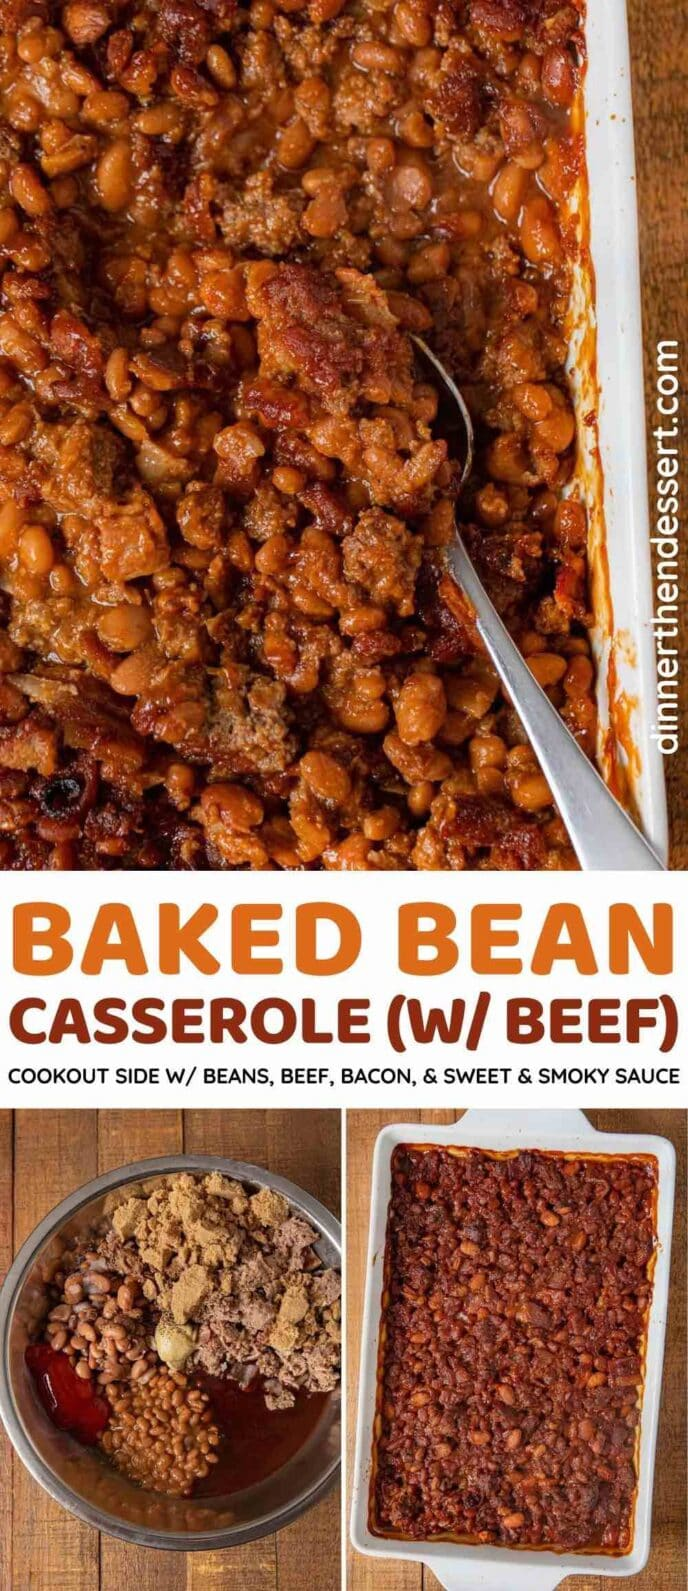 Baked Bean Casserole collage